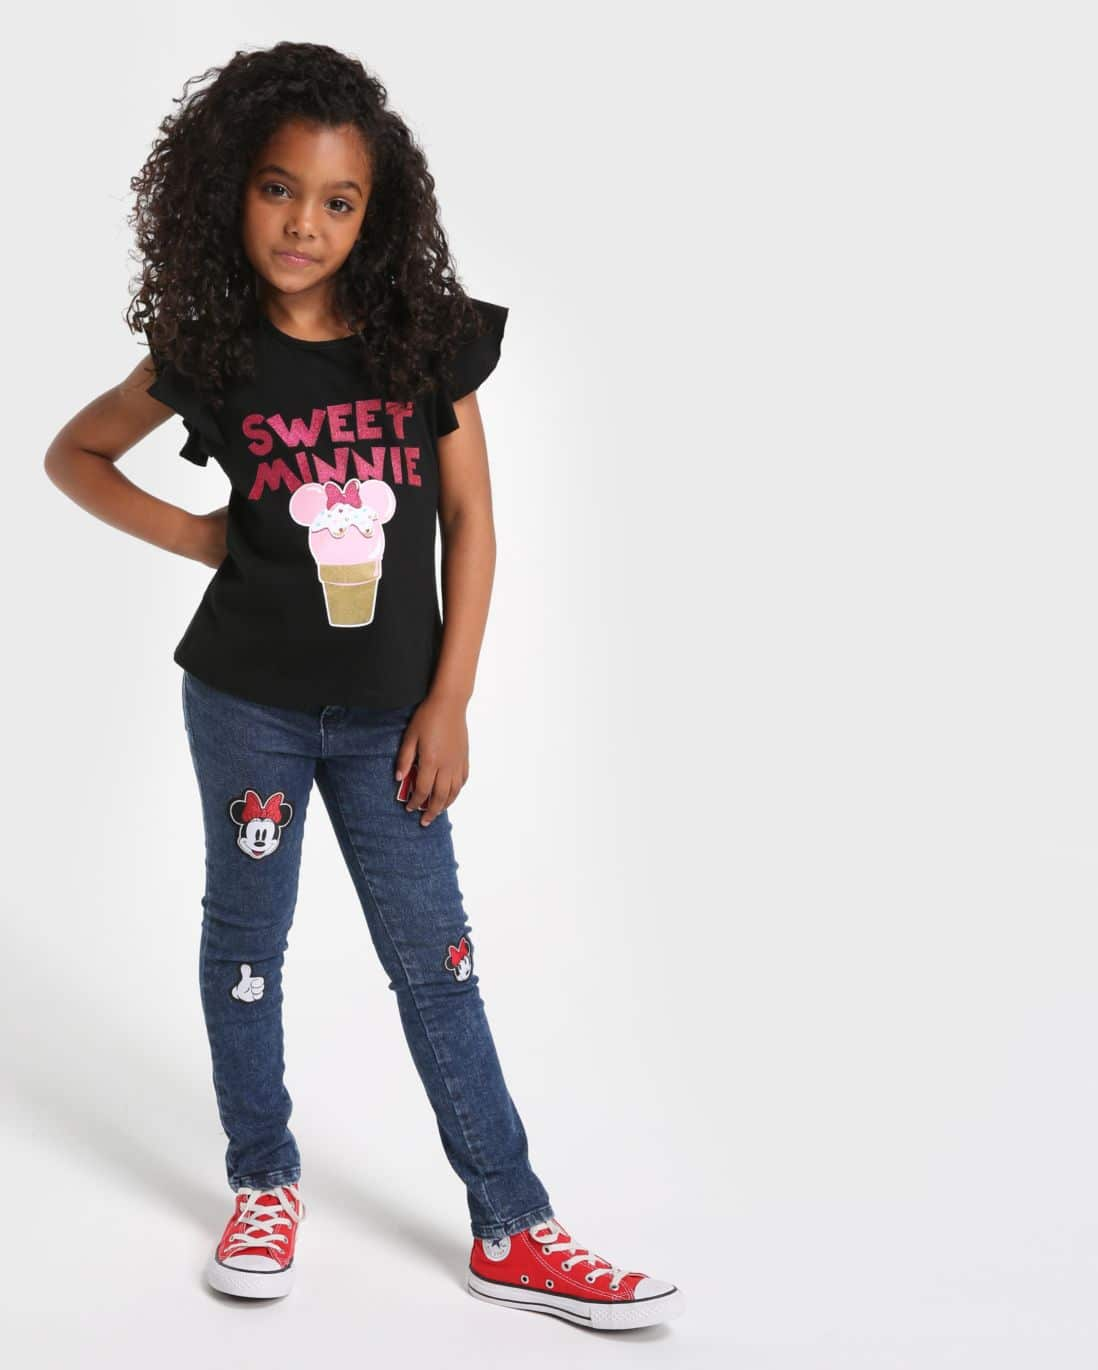 calca jeans minnie disney classicos foto: still